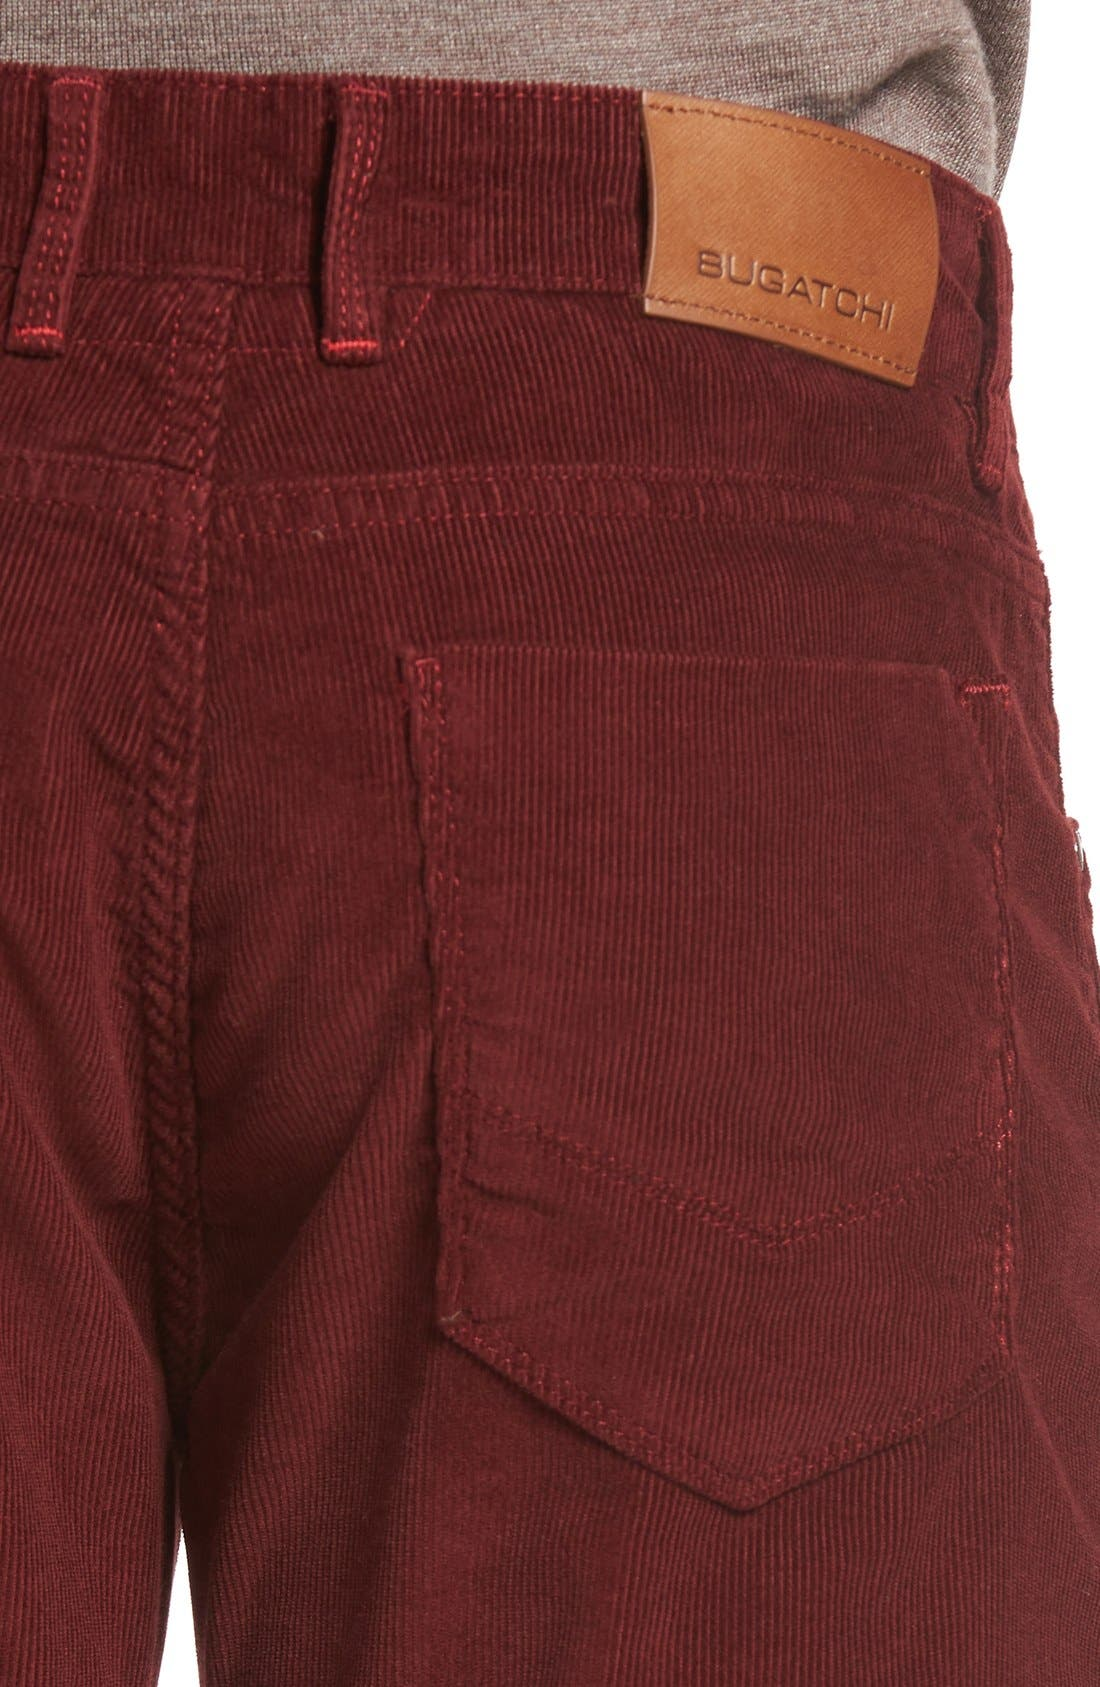 Slim Fit Corduroy Pants,                             Alternate thumbnail 24, color,